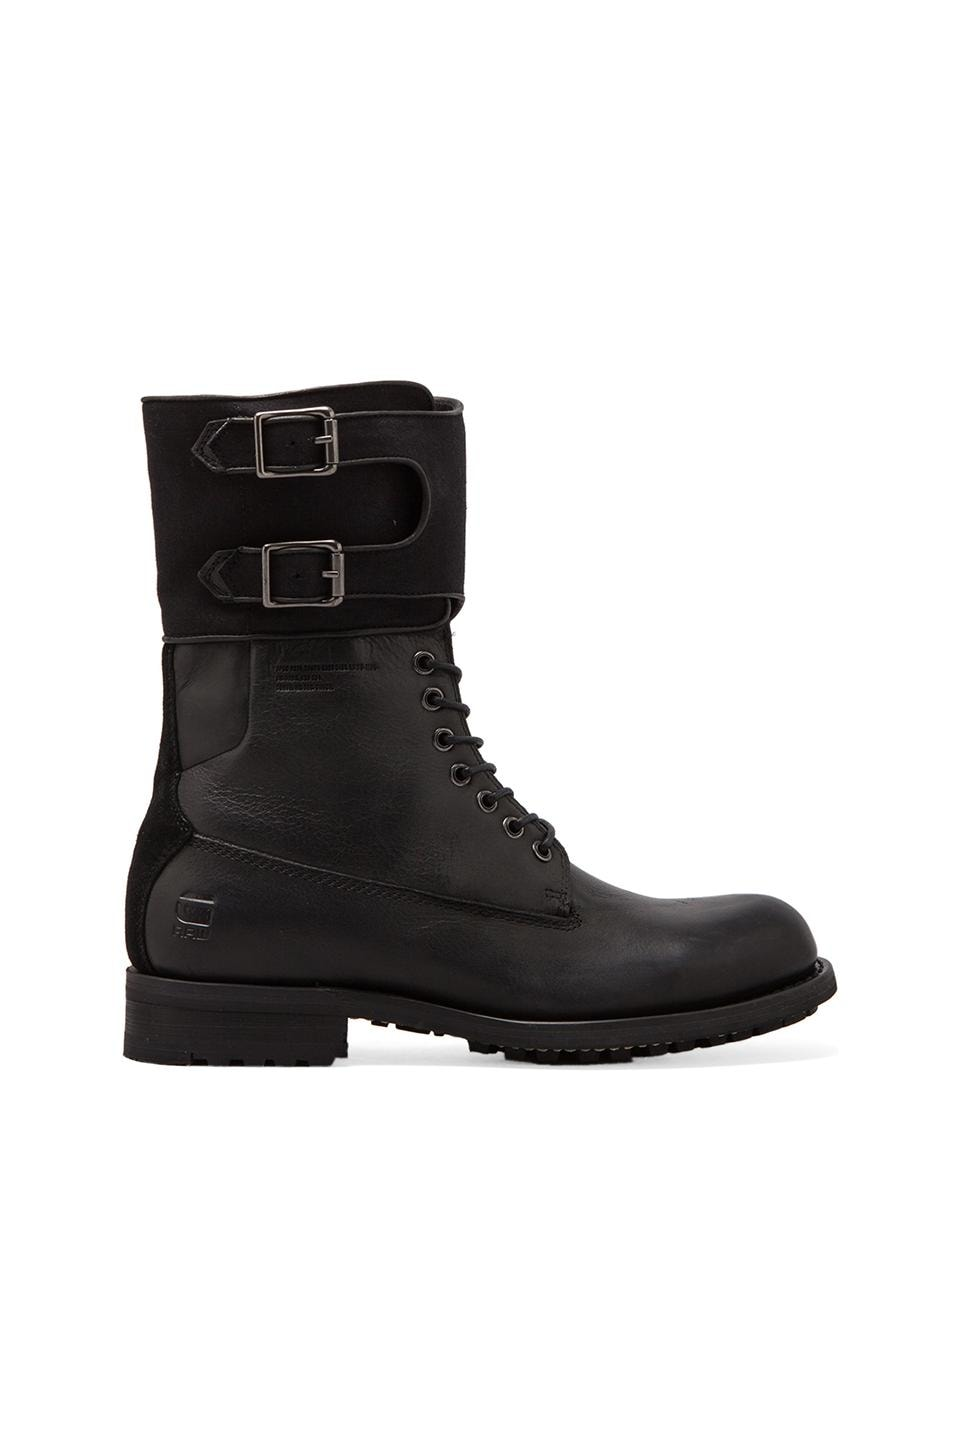 G-Star Patton IV Cavalry Cuff Boot in Black Leather & Textile